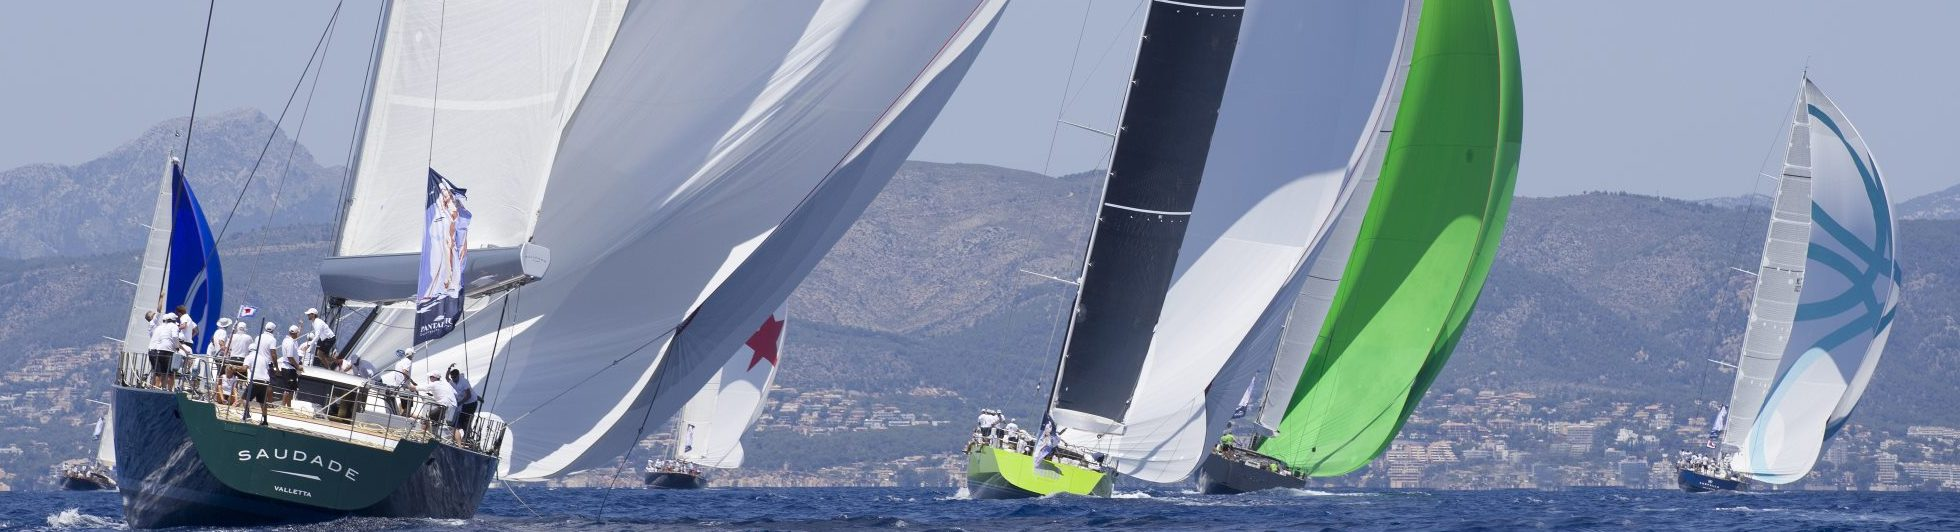 Superyacht Cup in Palma